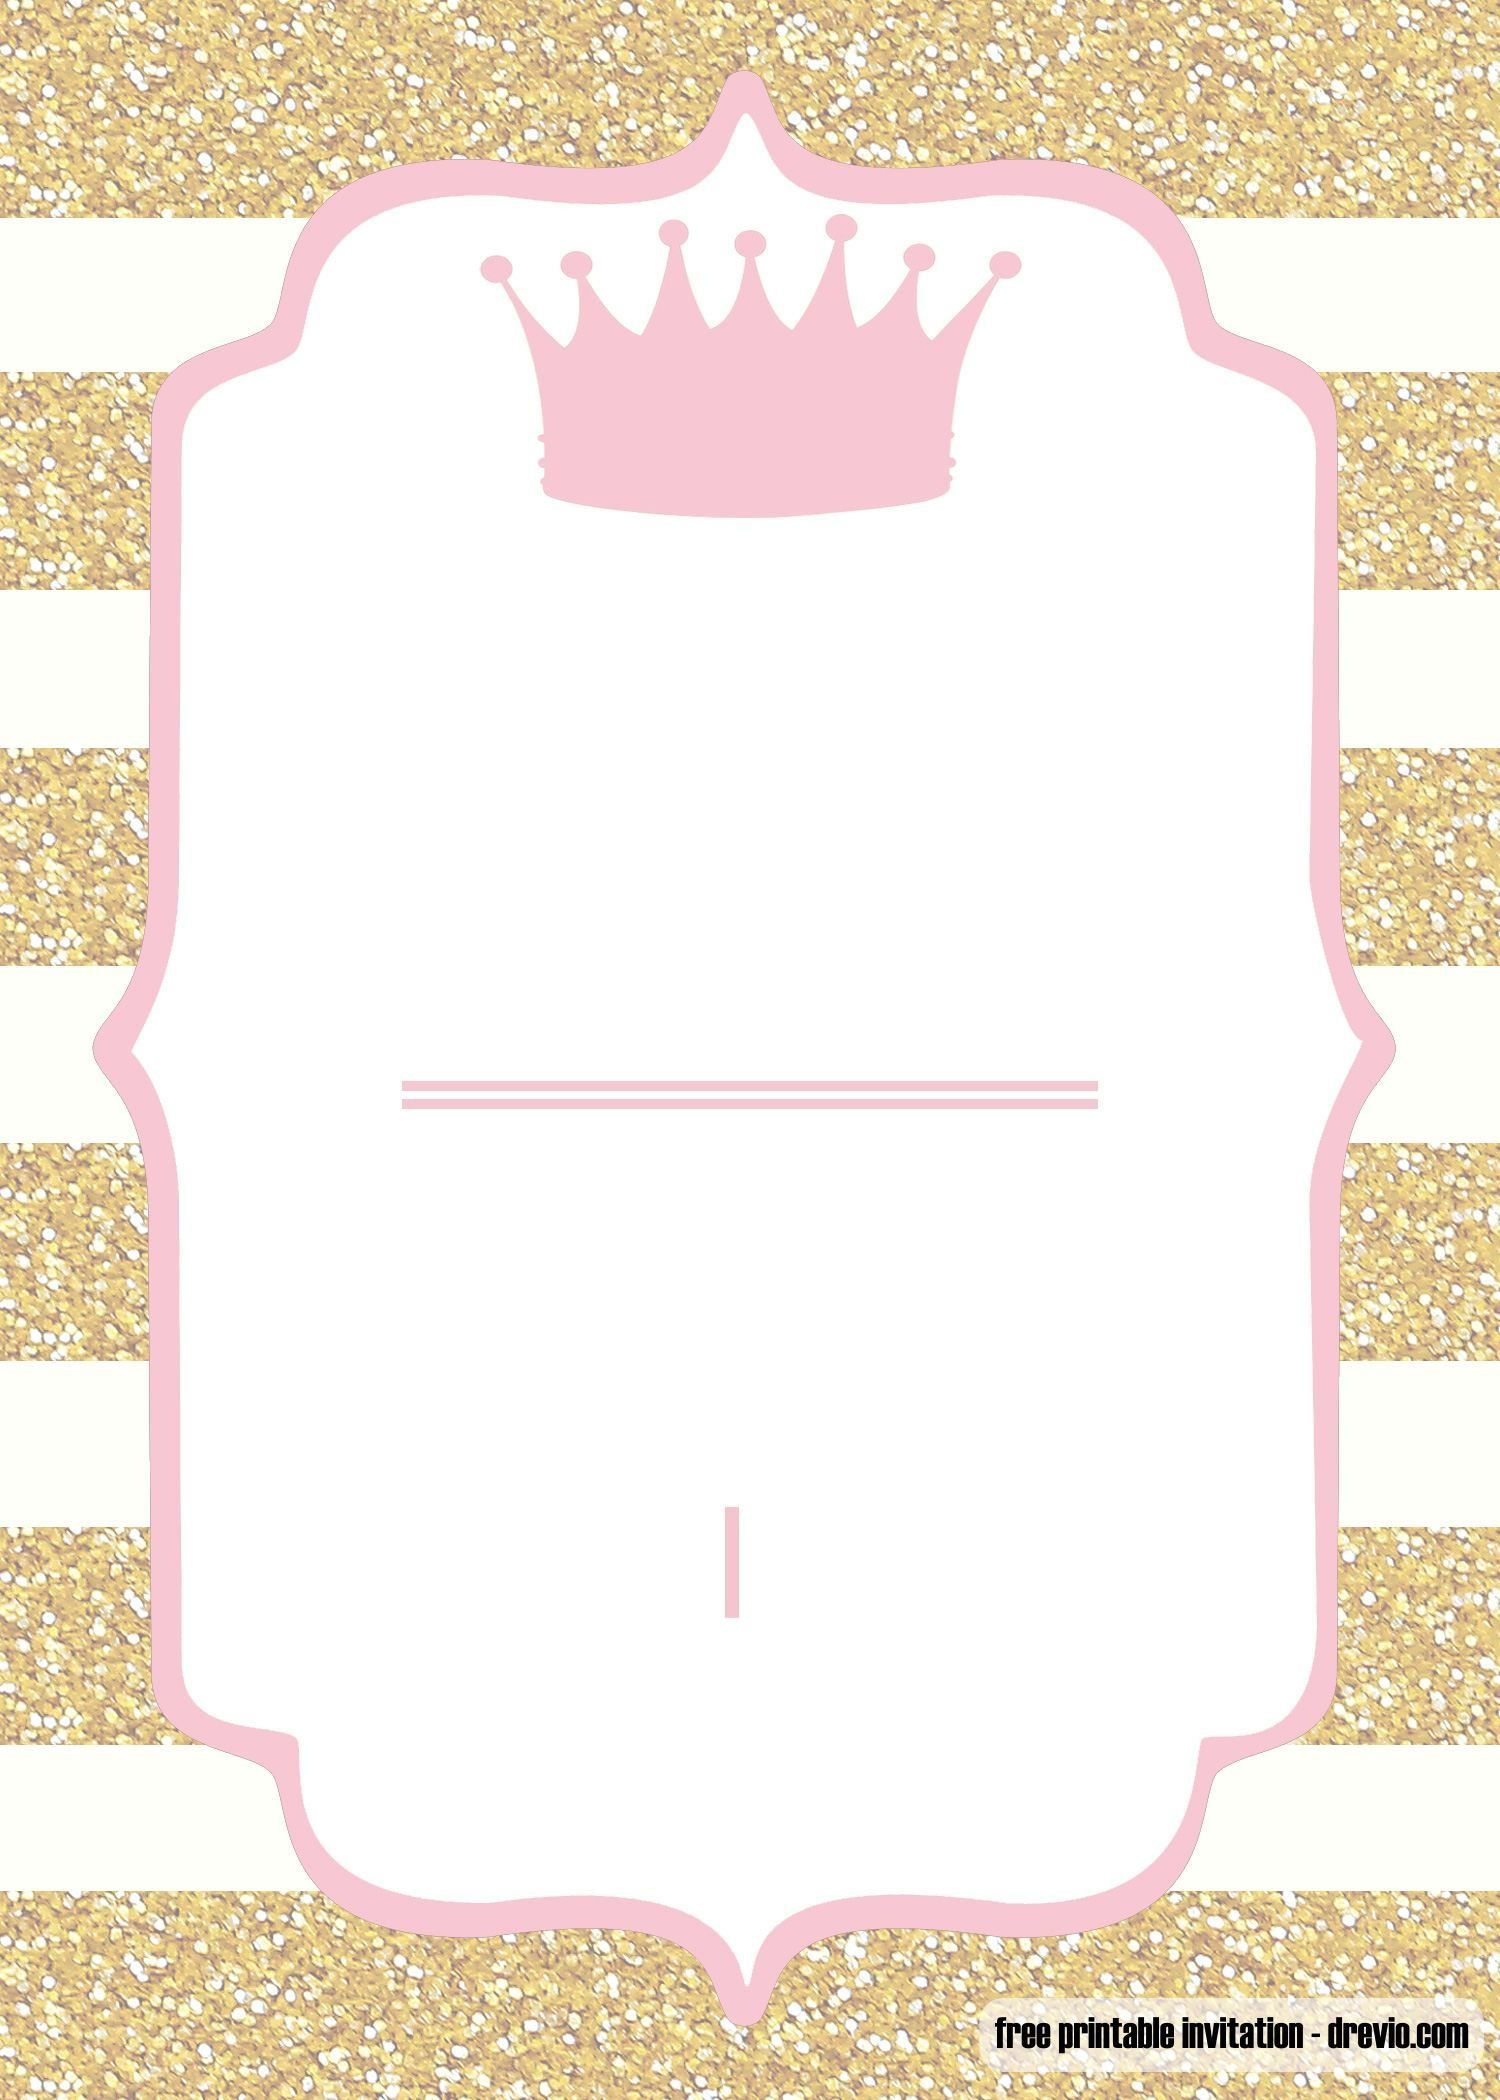 Free Printable Pink And Gold Baby Shower Invitation | Baby - Free Printable Blank Baby Shower Invitations